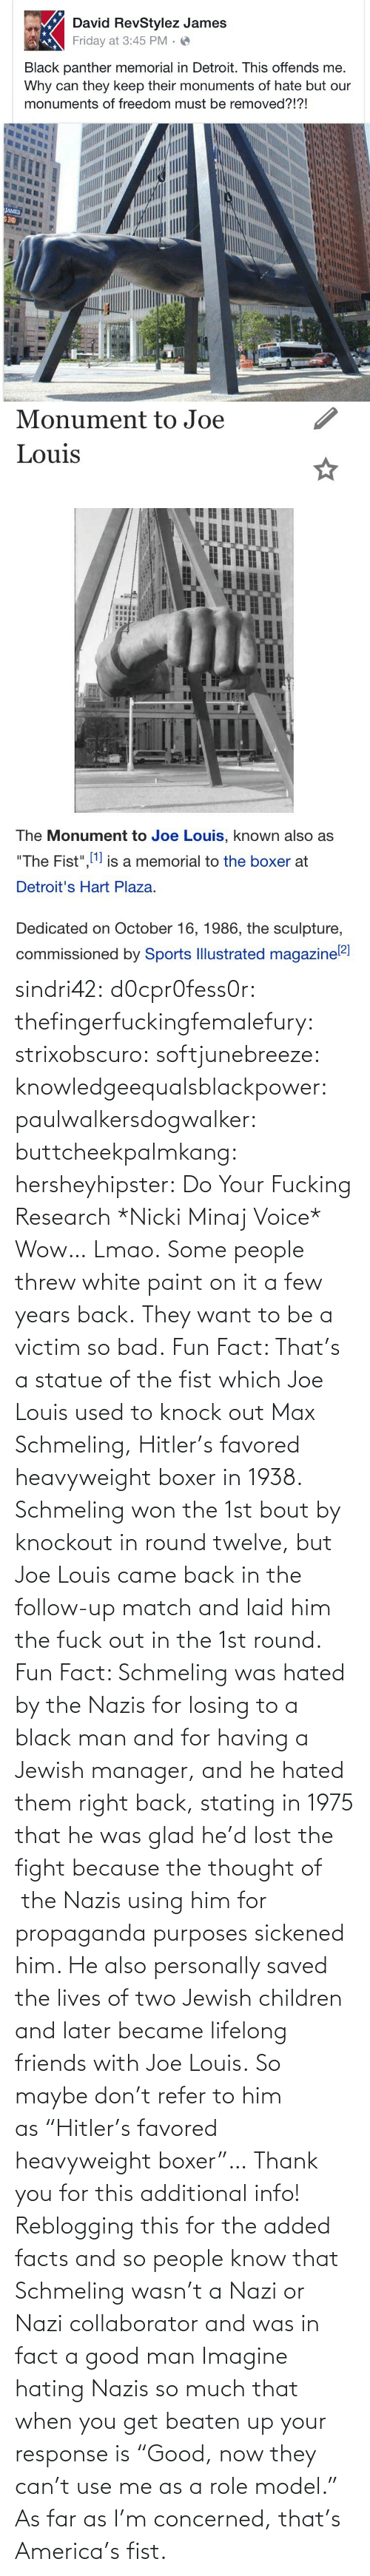 "saved: sindri42:  d0cpr0fess0r:  thefingerfuckingfemalefury:  strixobscuro:  softjunebreeze:  knowledgeequalsblackpower:  paulwalkersdogwalker:   buttcheekpalmkang:   hersheyhipster:  Do Your Fucking Research *Nicki Minaj Voice*    Wow… Lmao.   Some people threw white paint on it a few years back.   They want to be a victim so bad.  Fun Fact: That's a statue of the fist which Joe Louis used to knock out Max Schmeling, Hitler's favored heavyweight boxer in 1938. Schmeling won the 1st bout by knockout in round twelve, but Joe Louis came back in the follow-up match and laid him the fuck out in the 1st round.  Fun Fact: Schmeling was hated by the Nazis for losing to a black man and for having a Jewish manager, and he hated them right back, stating in 1975 that he was glad he'd lost the fight because the thought of  the Nazis using him for propaganda purposes sickened him. He also personally saved the lives of two Jewish children and later became lifelong friends with Joe Louis. So maybe don't refer to him as ""Hitler's favored heavyweight boxer""…  Thank you for this additional info! Reblogging this for the added facts and so people know that Schmeling wasn't a Nazi or Nazi collaborator and was in fact a good man   Imagine hating Nazis so much that when you get beaten up your response is ""Good, now they can't use me as a role model.""  As far as I'm concerned, that's America's fist."